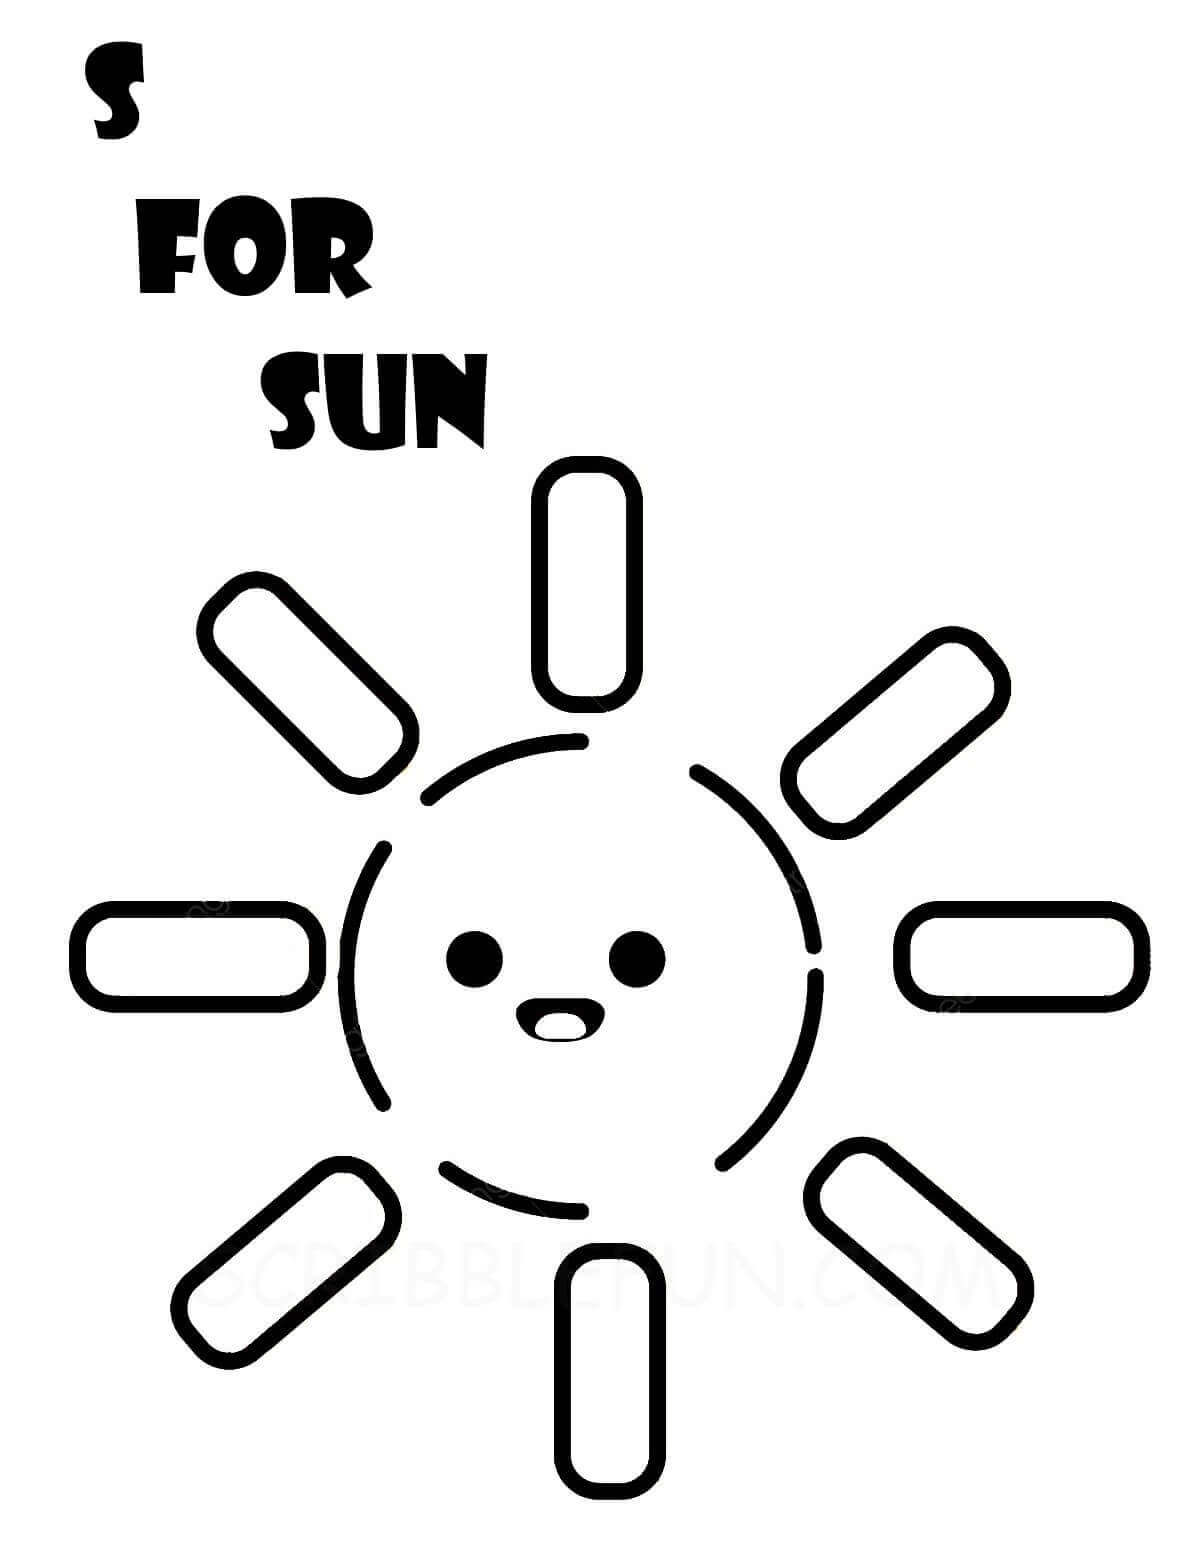 S for Sun coloring page